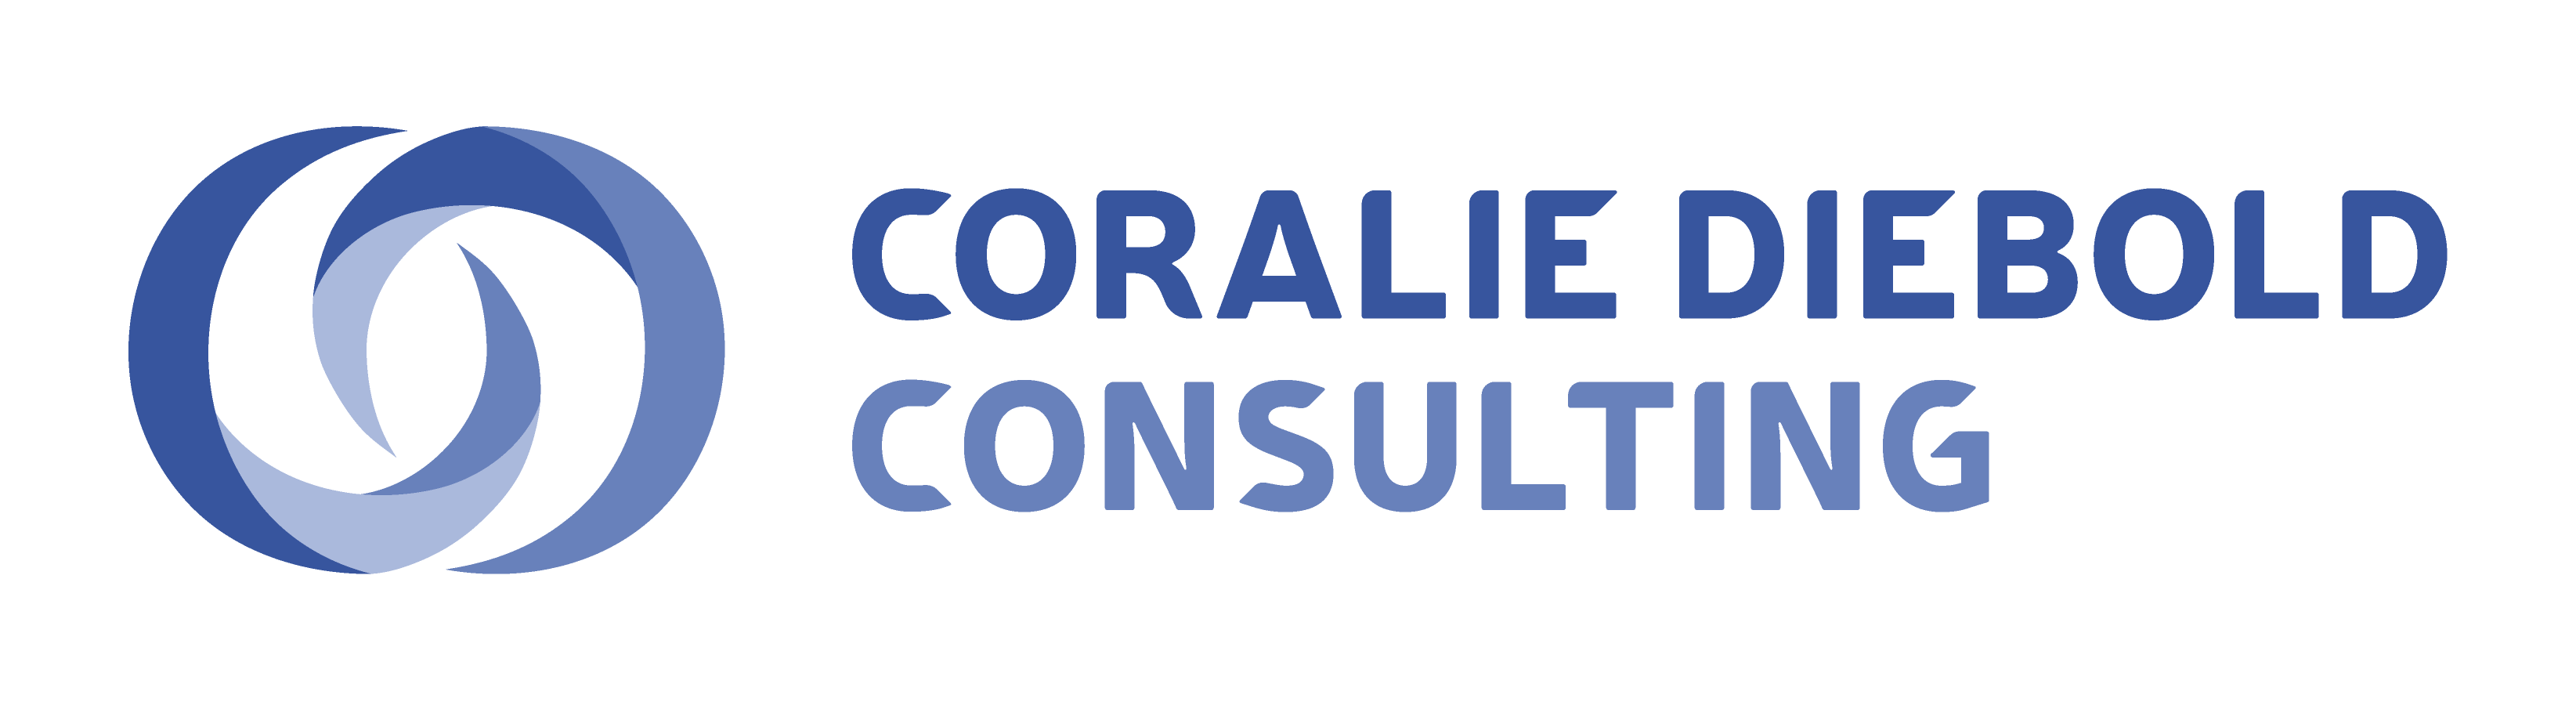 Coralie Diebold Consulting